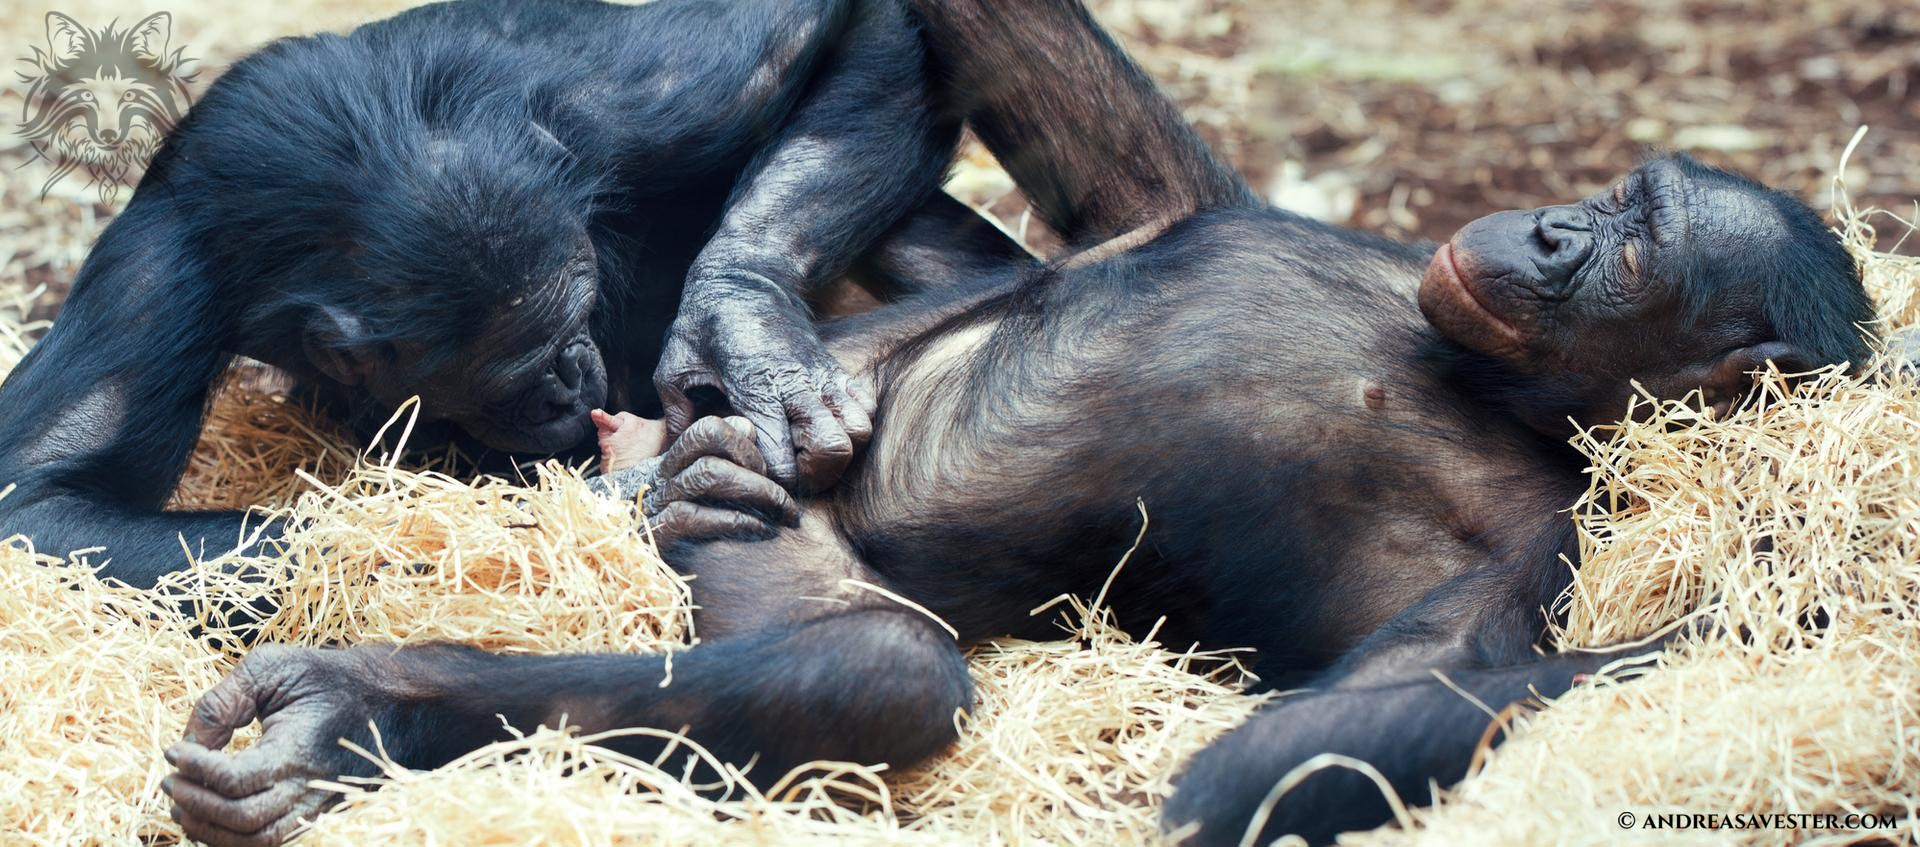 Bonobo Ape Sexual Behavior